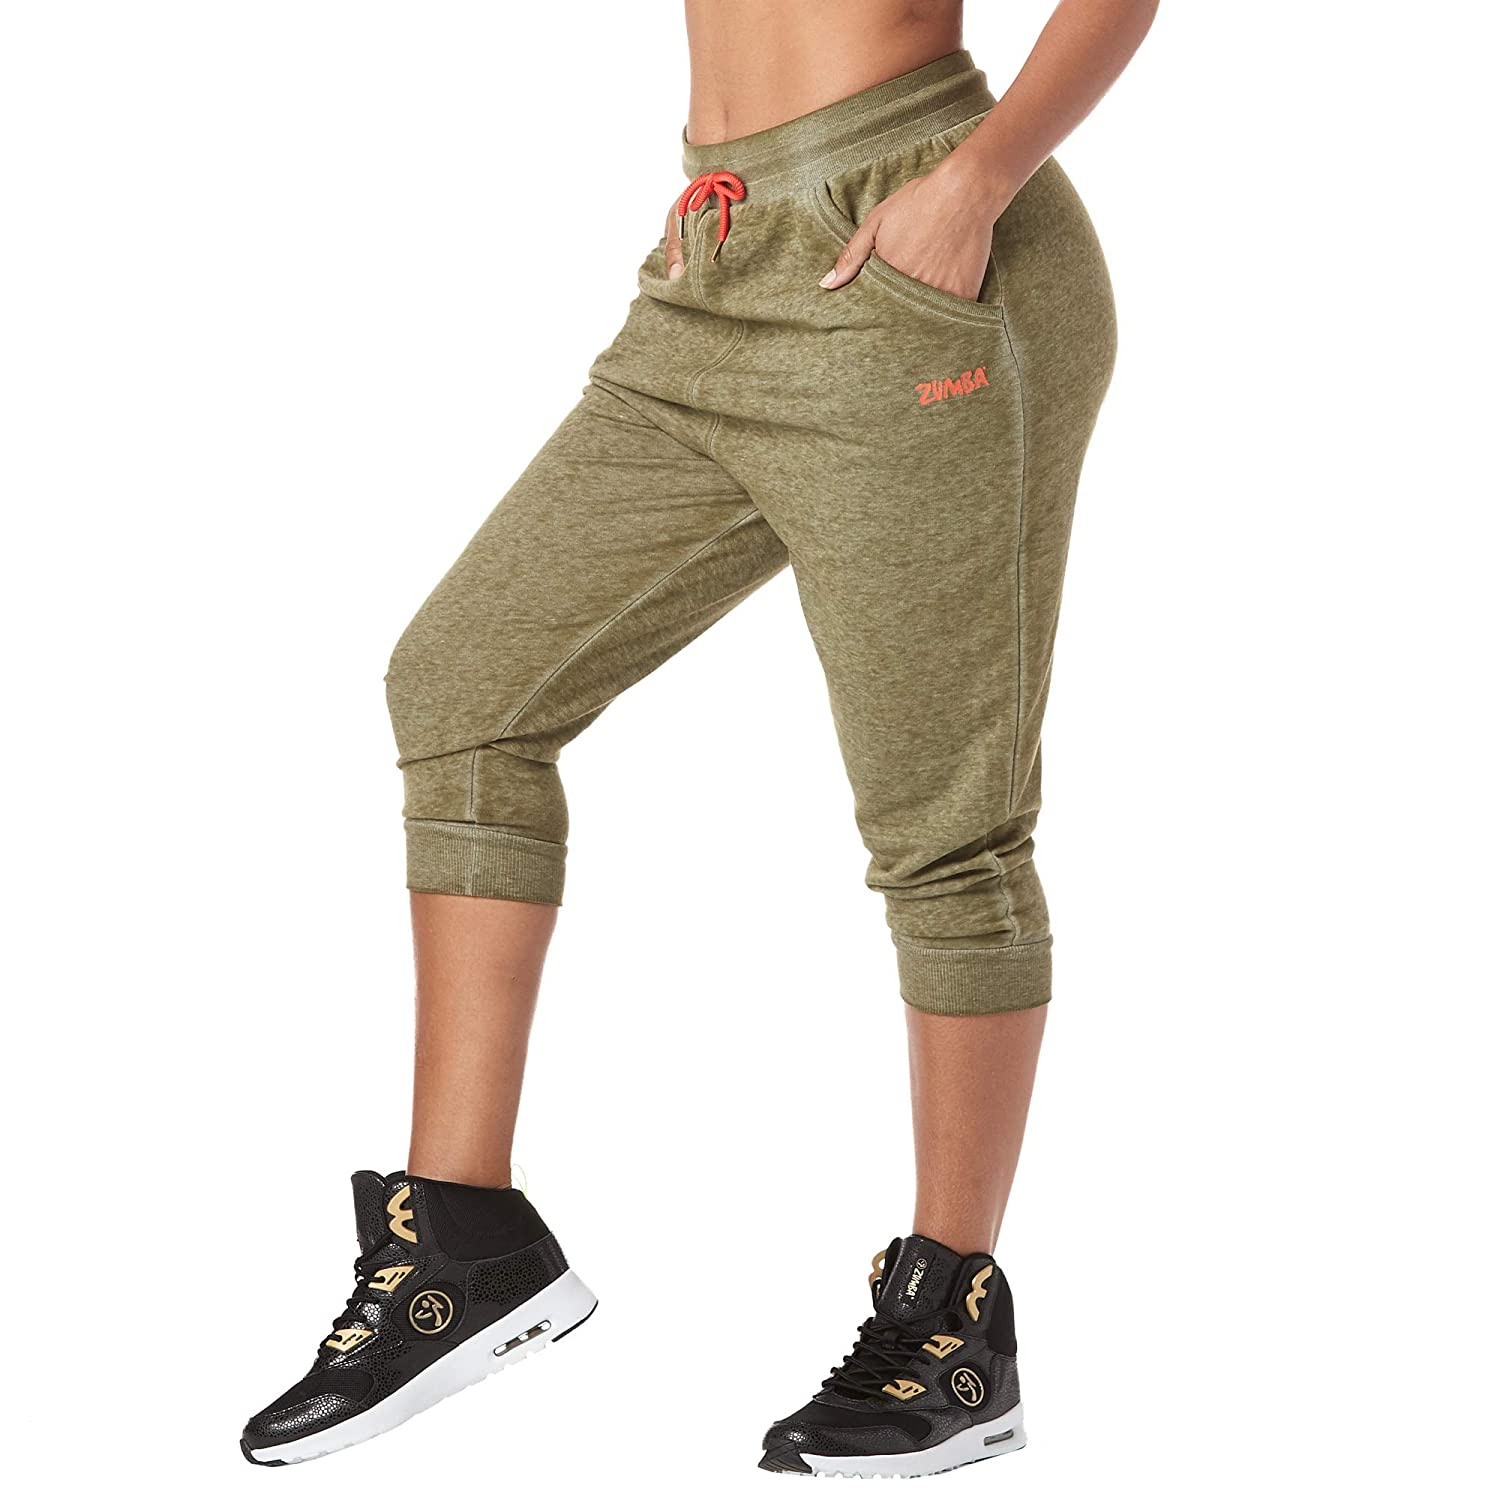 X-Large Zumba Womens Soft Breathable Activewear Harem Capri Workout Pants Army Green